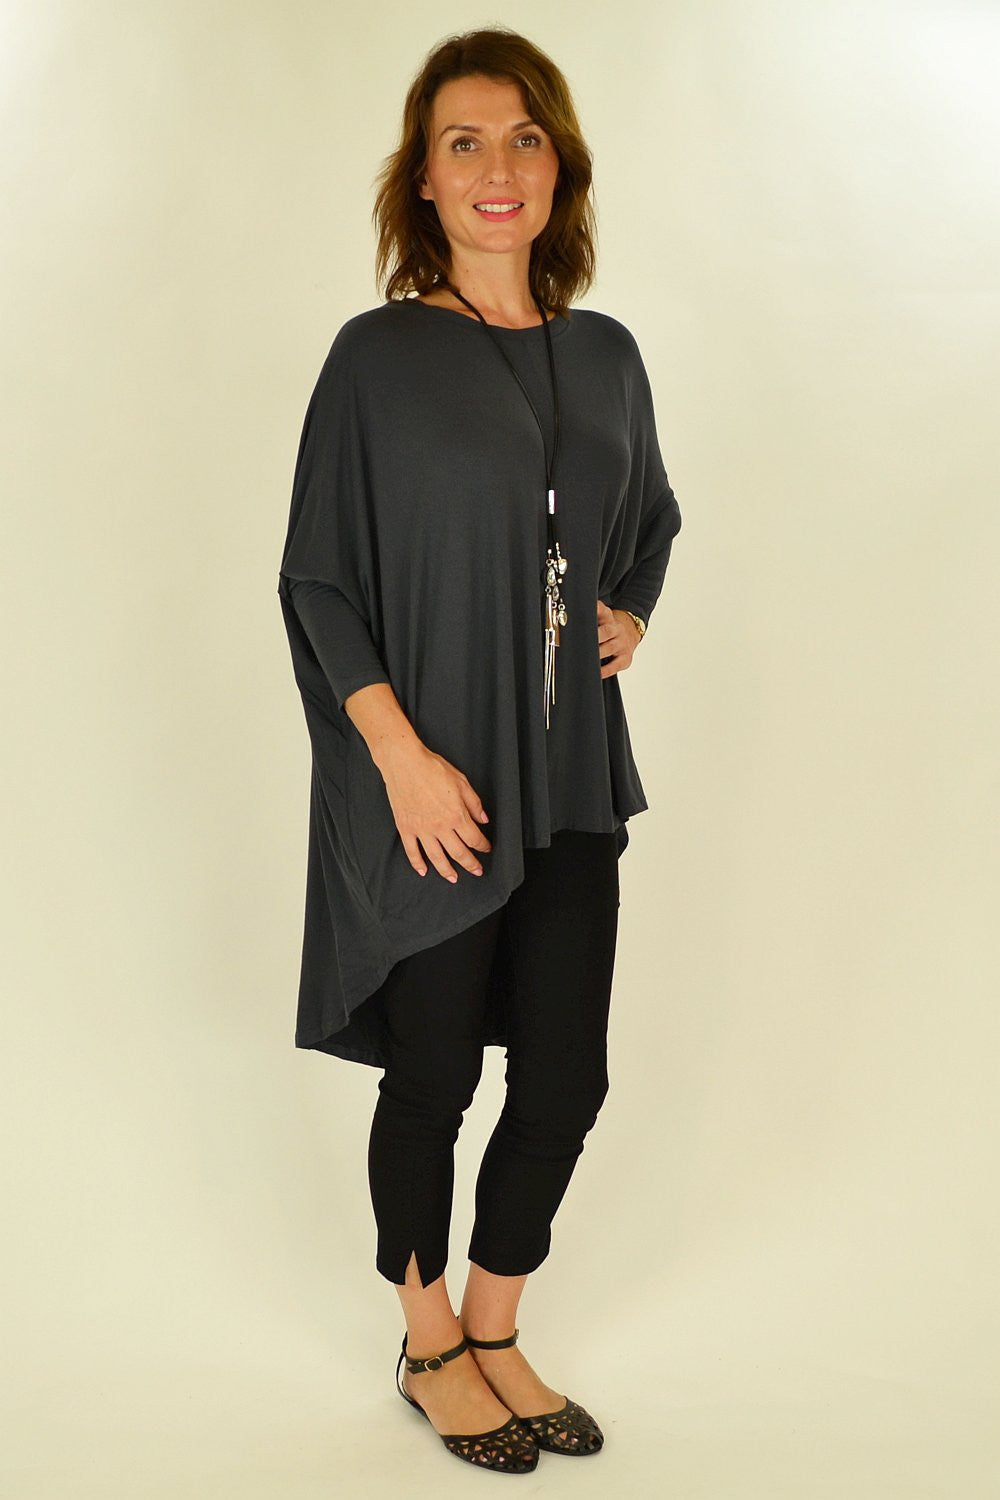 Charcoal Relaxed Renee Tunic - at I Love Tunics @ www.ilovetunics.com = Number One! Tunics Destination